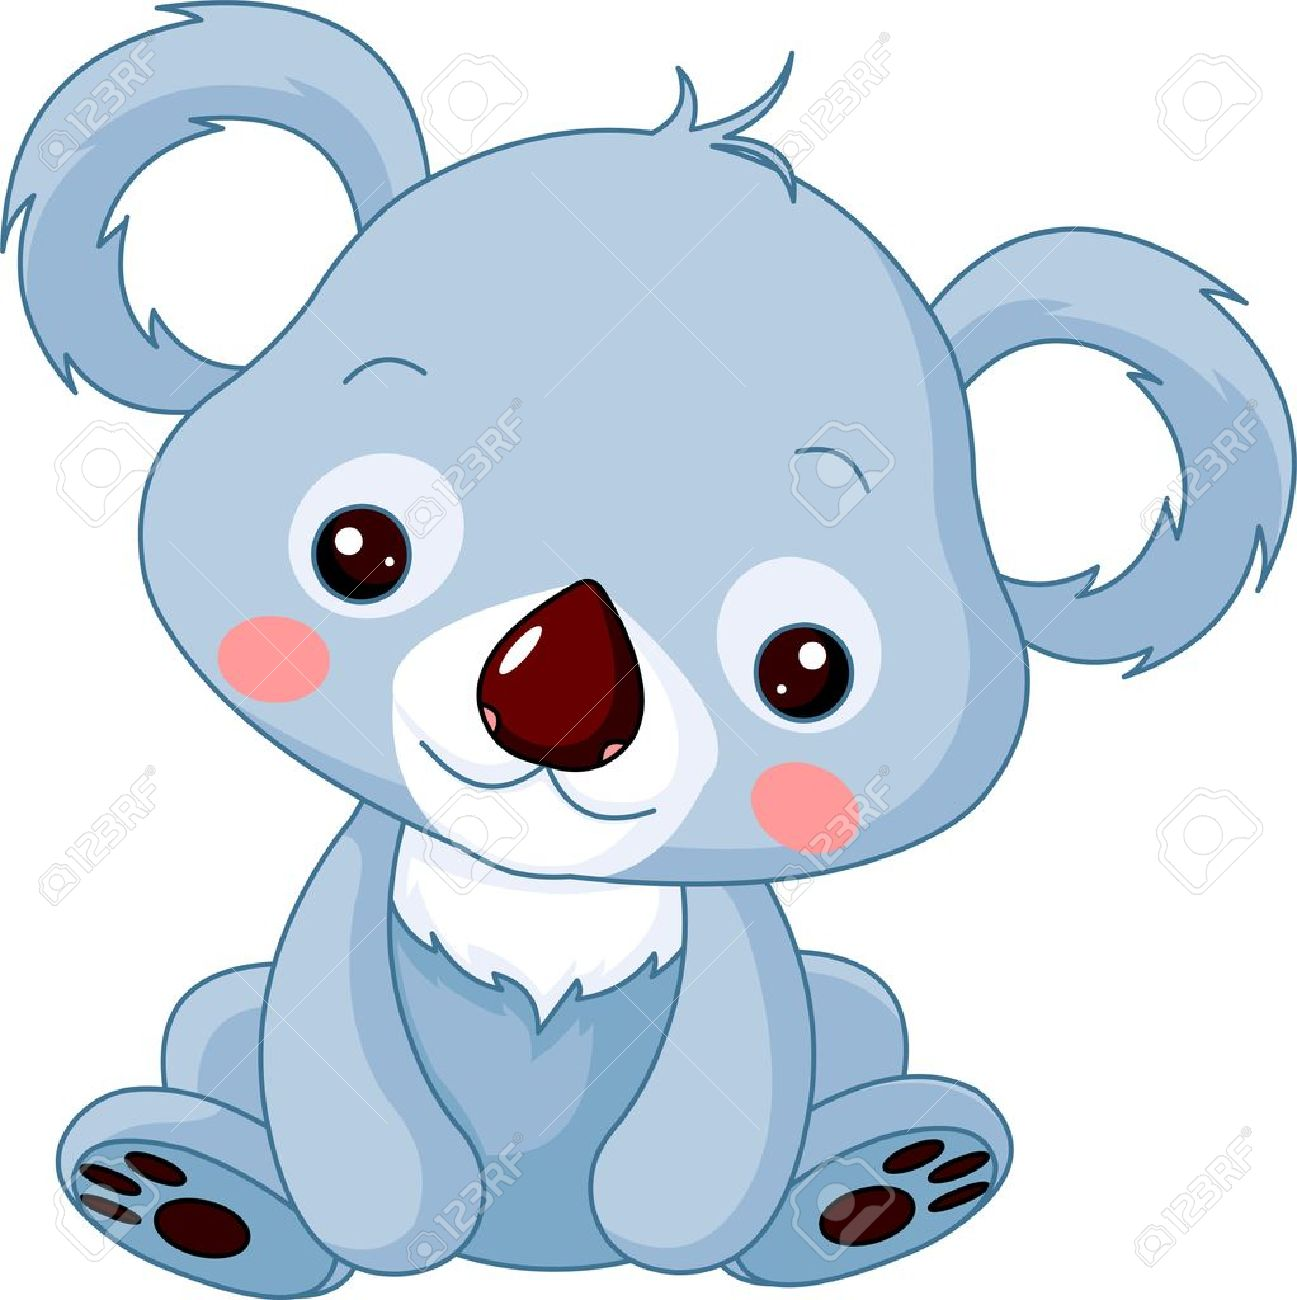 fun zoo illustration of cute koala bear royalty free cliparts rh 123rf com  cute koala bear clipart